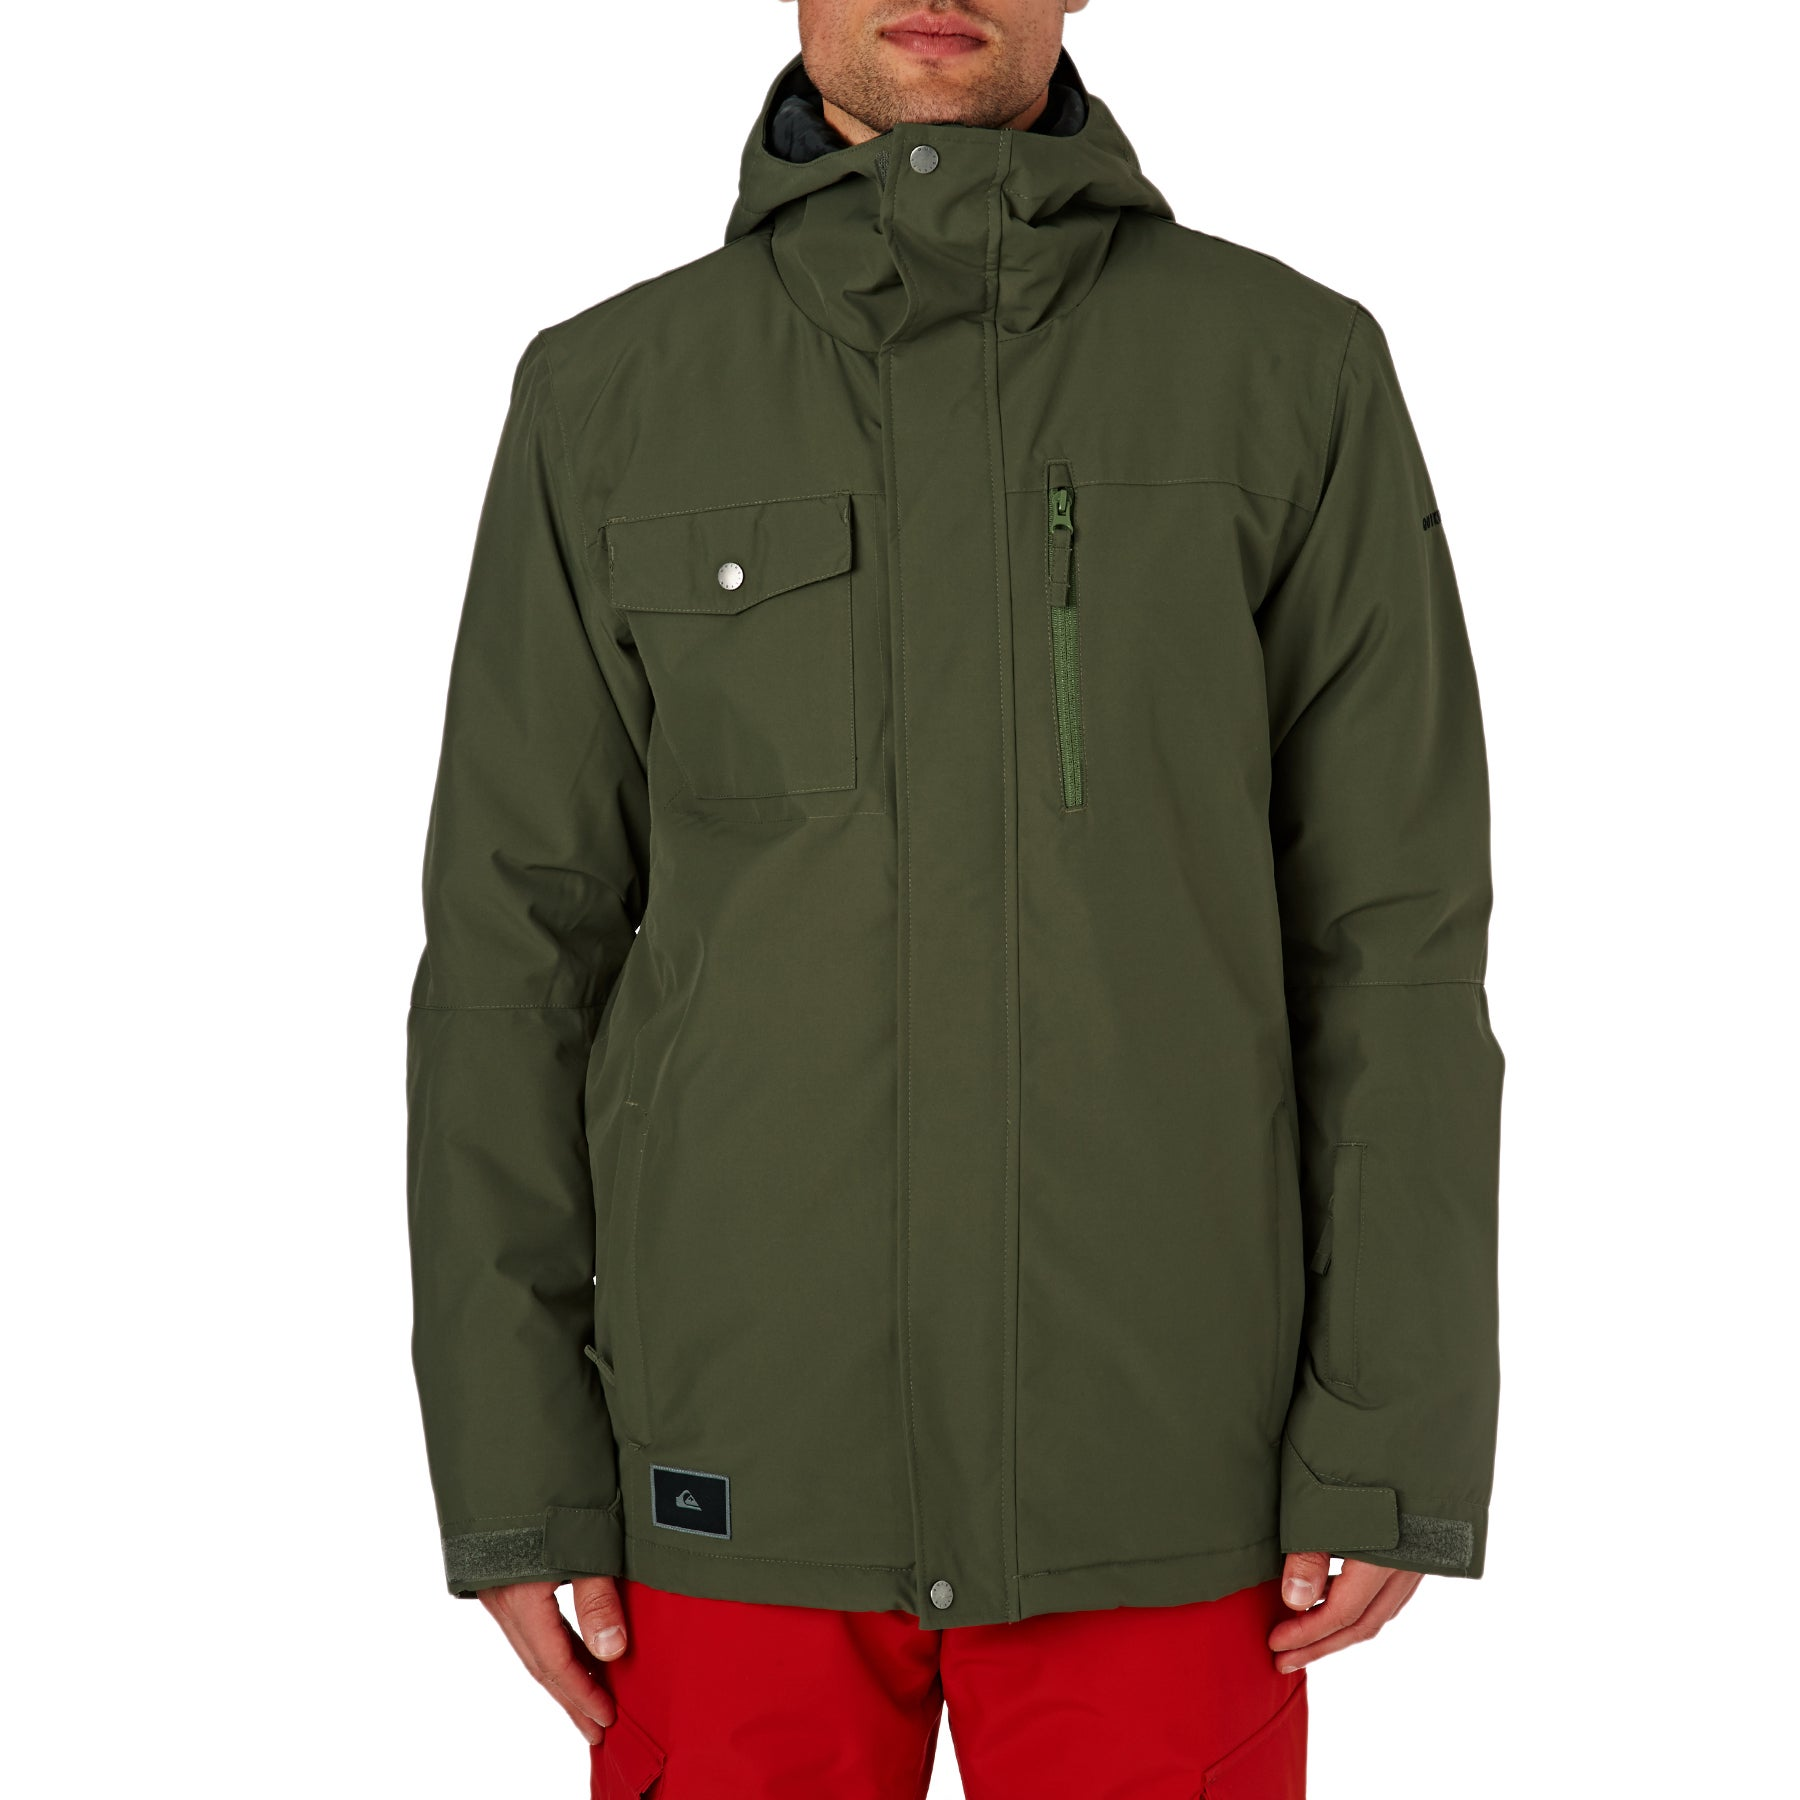 Blouson pour Snowboard Quiksilver Mission - Grape Leaf